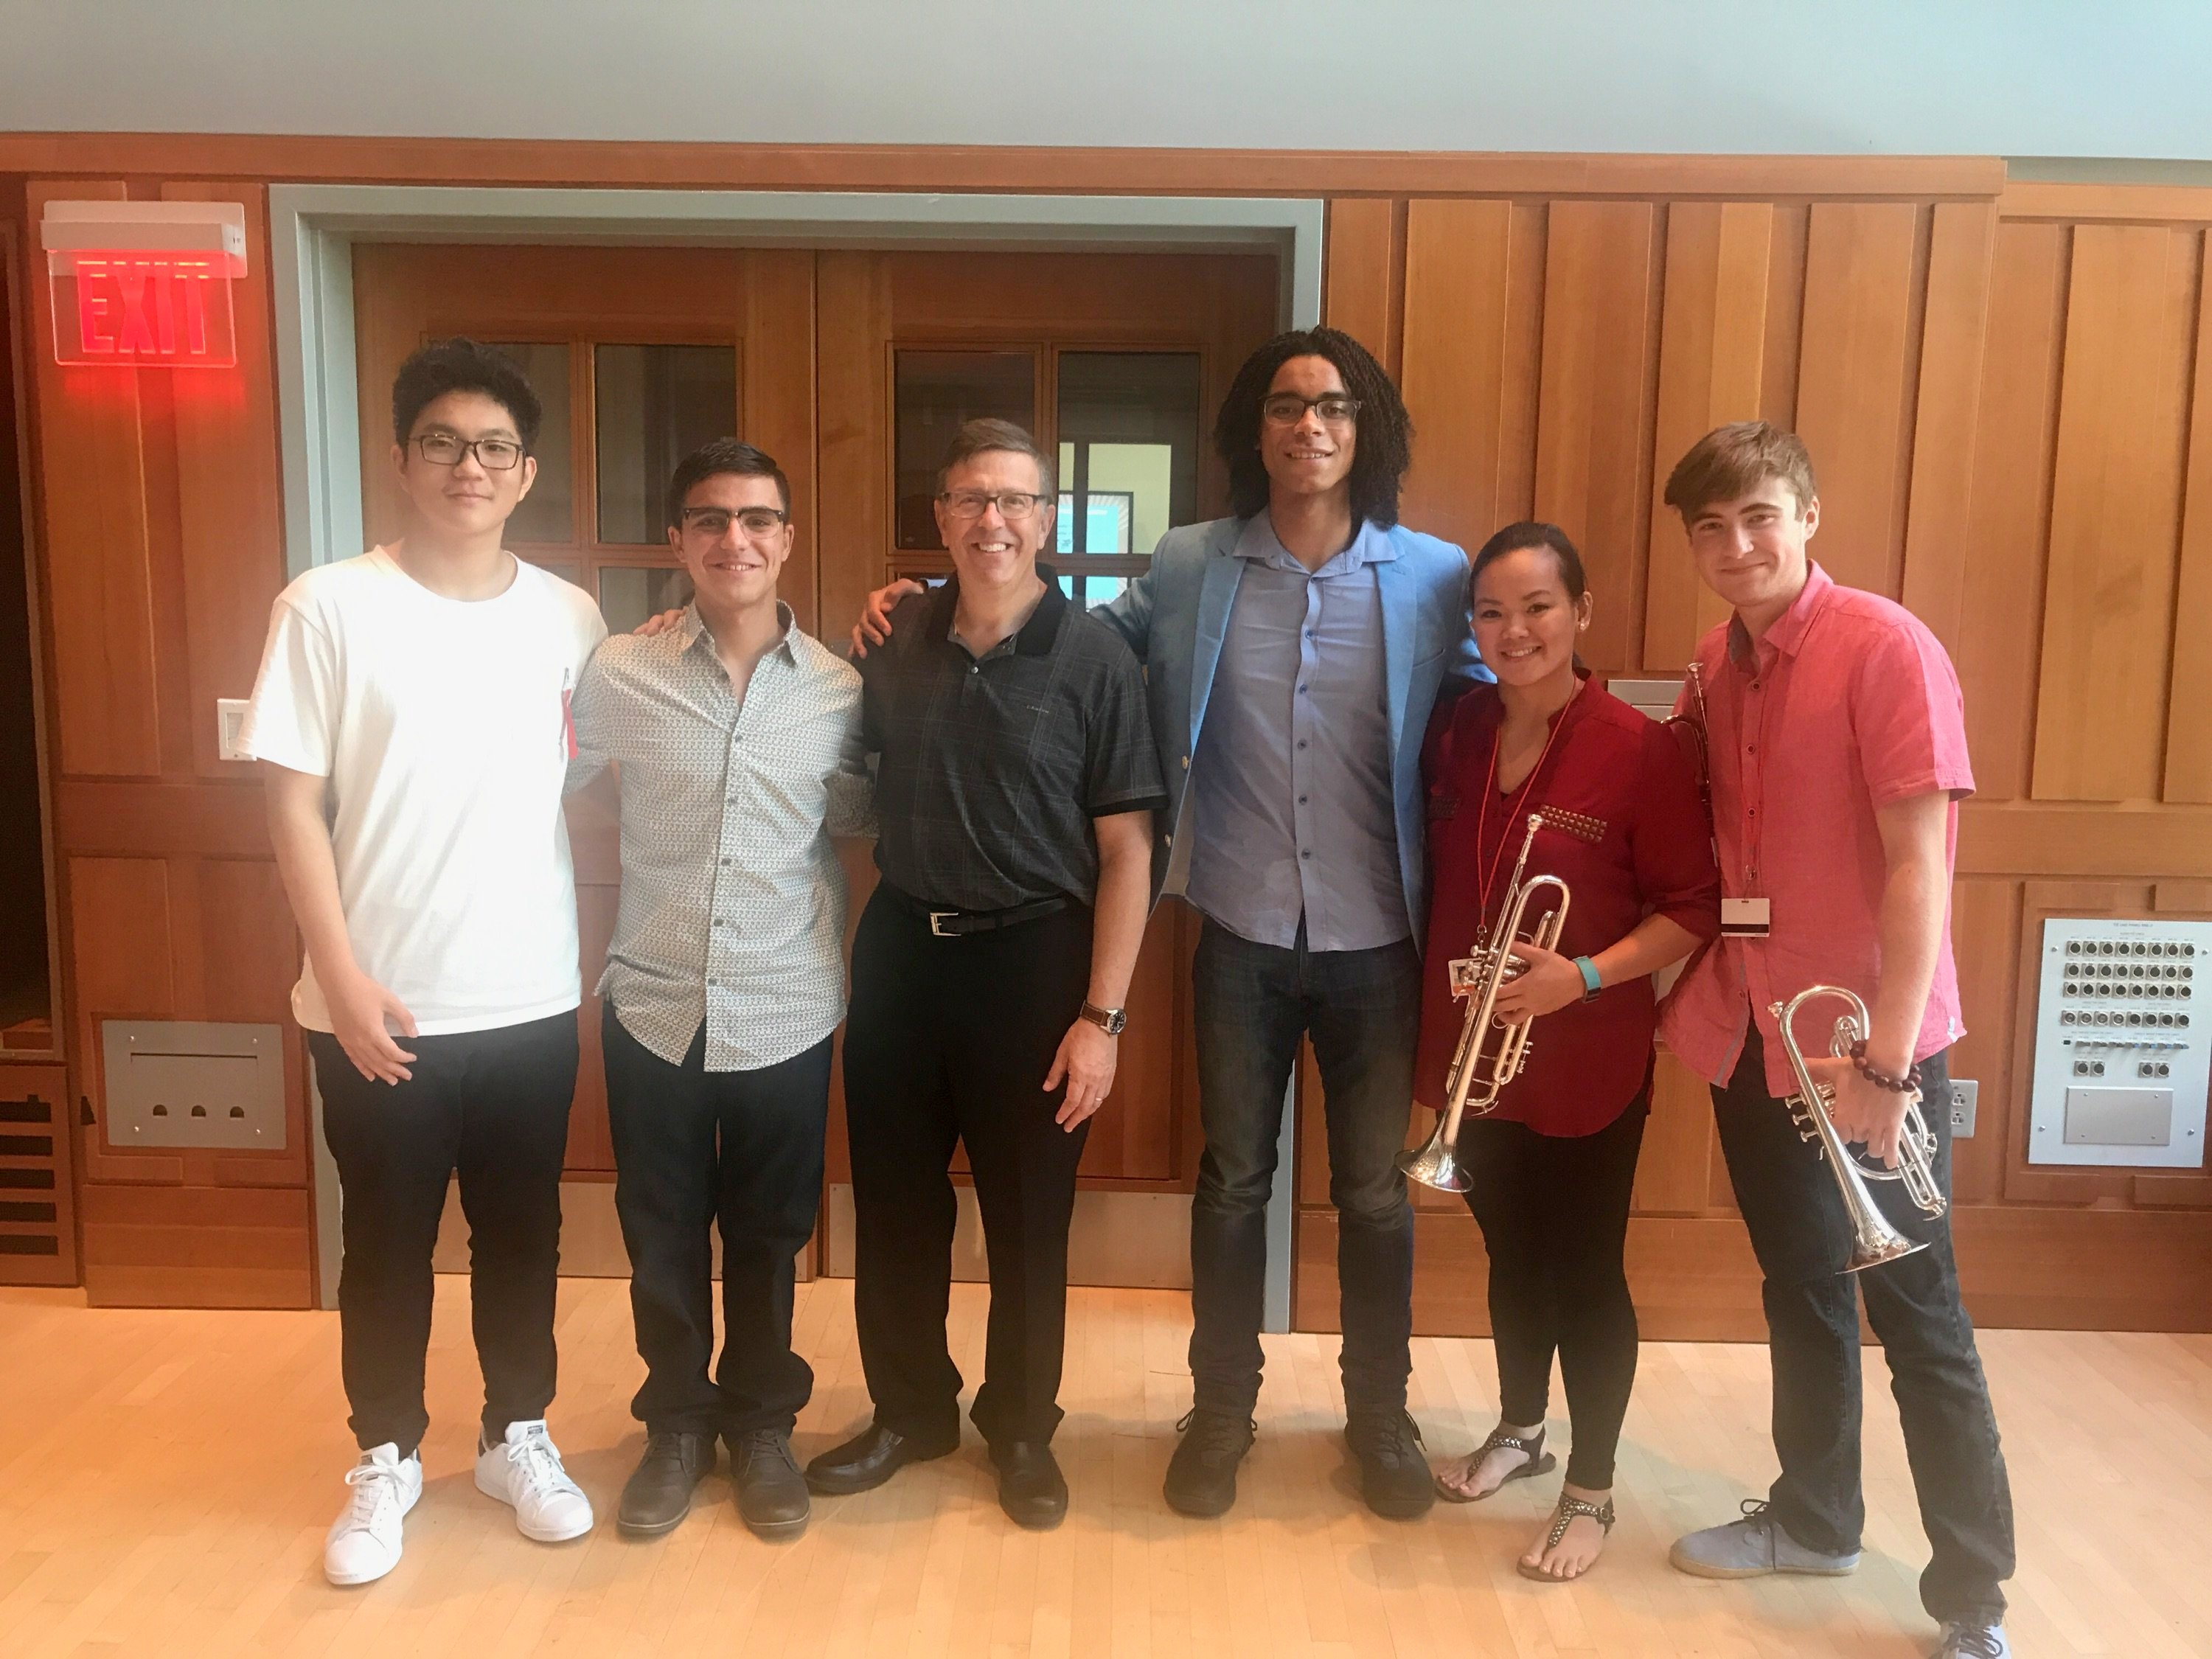 Professor David Bilger with students William Leathers and others, Curtis Summerfest, Curtis Institute of Music, 1726 Locust St. Philadelphia, PA 19103 USA - 21 July 2017